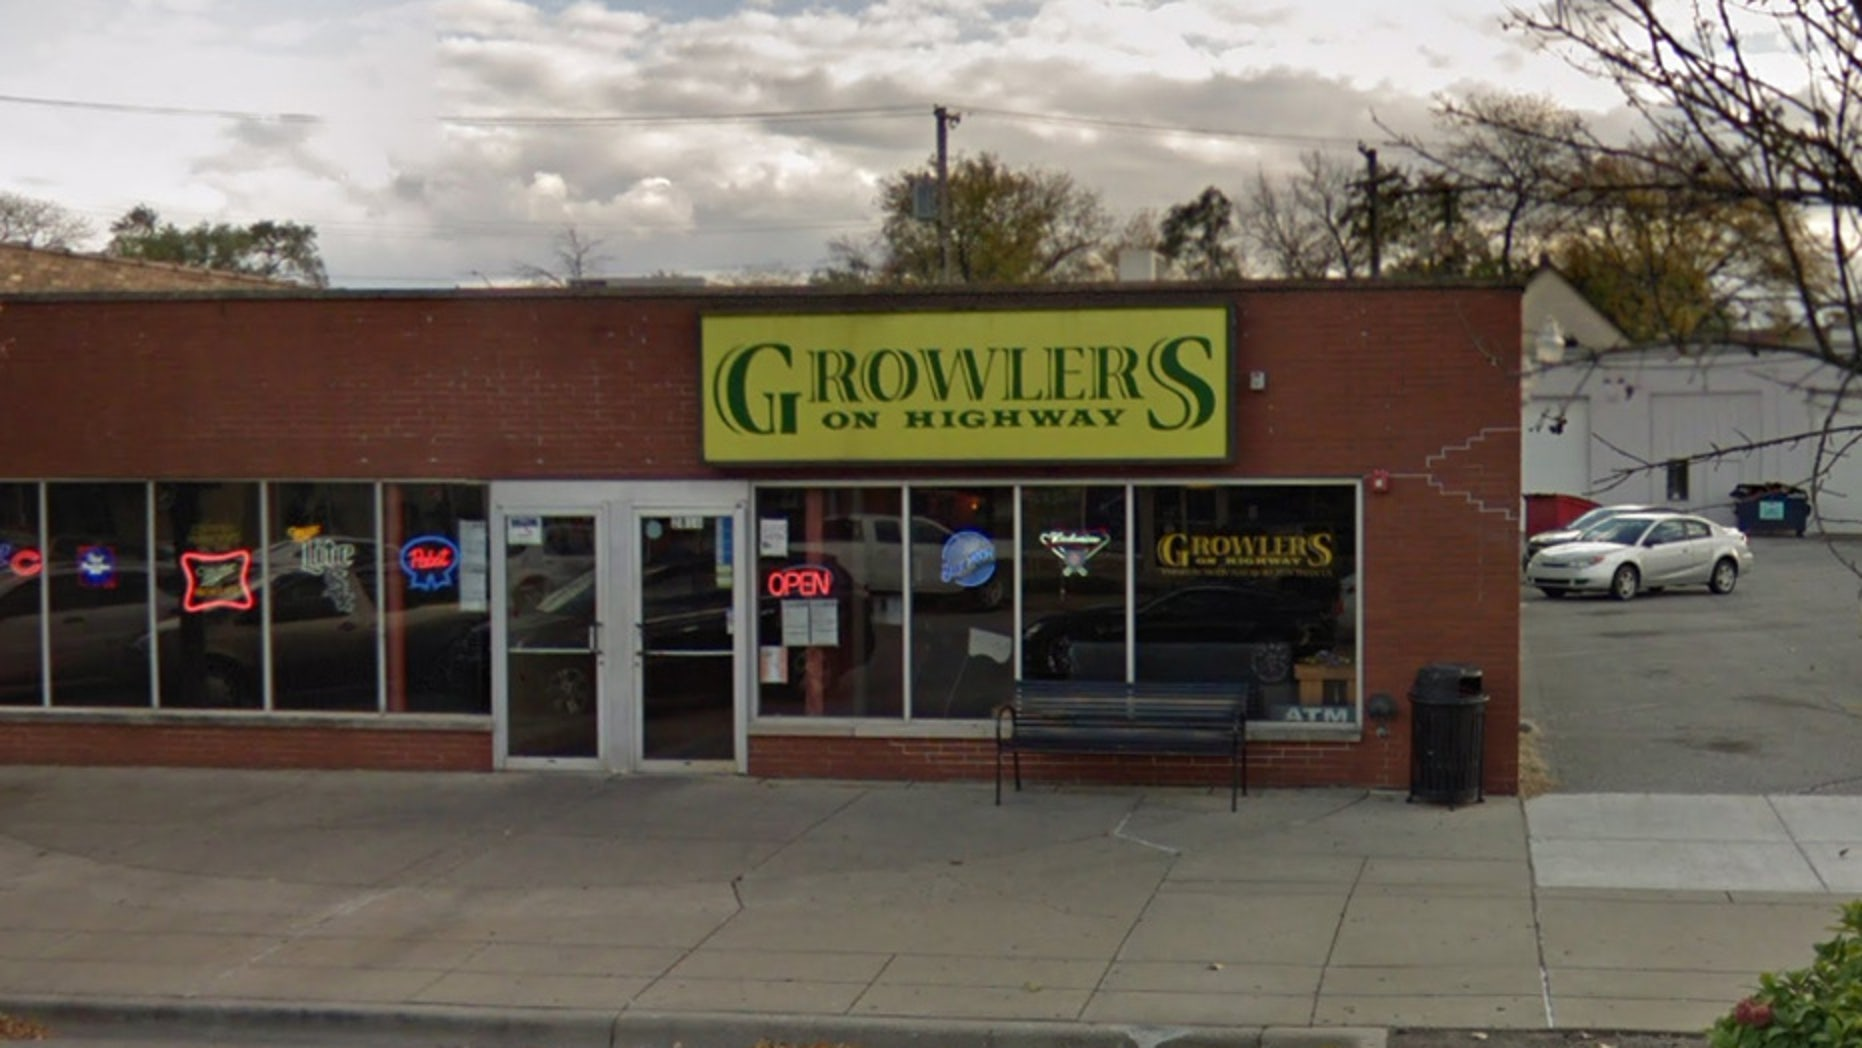 Two off-duty Indiana police officers were shot outside Growlers bar early Saturday in Highland, Ind., authorities said.